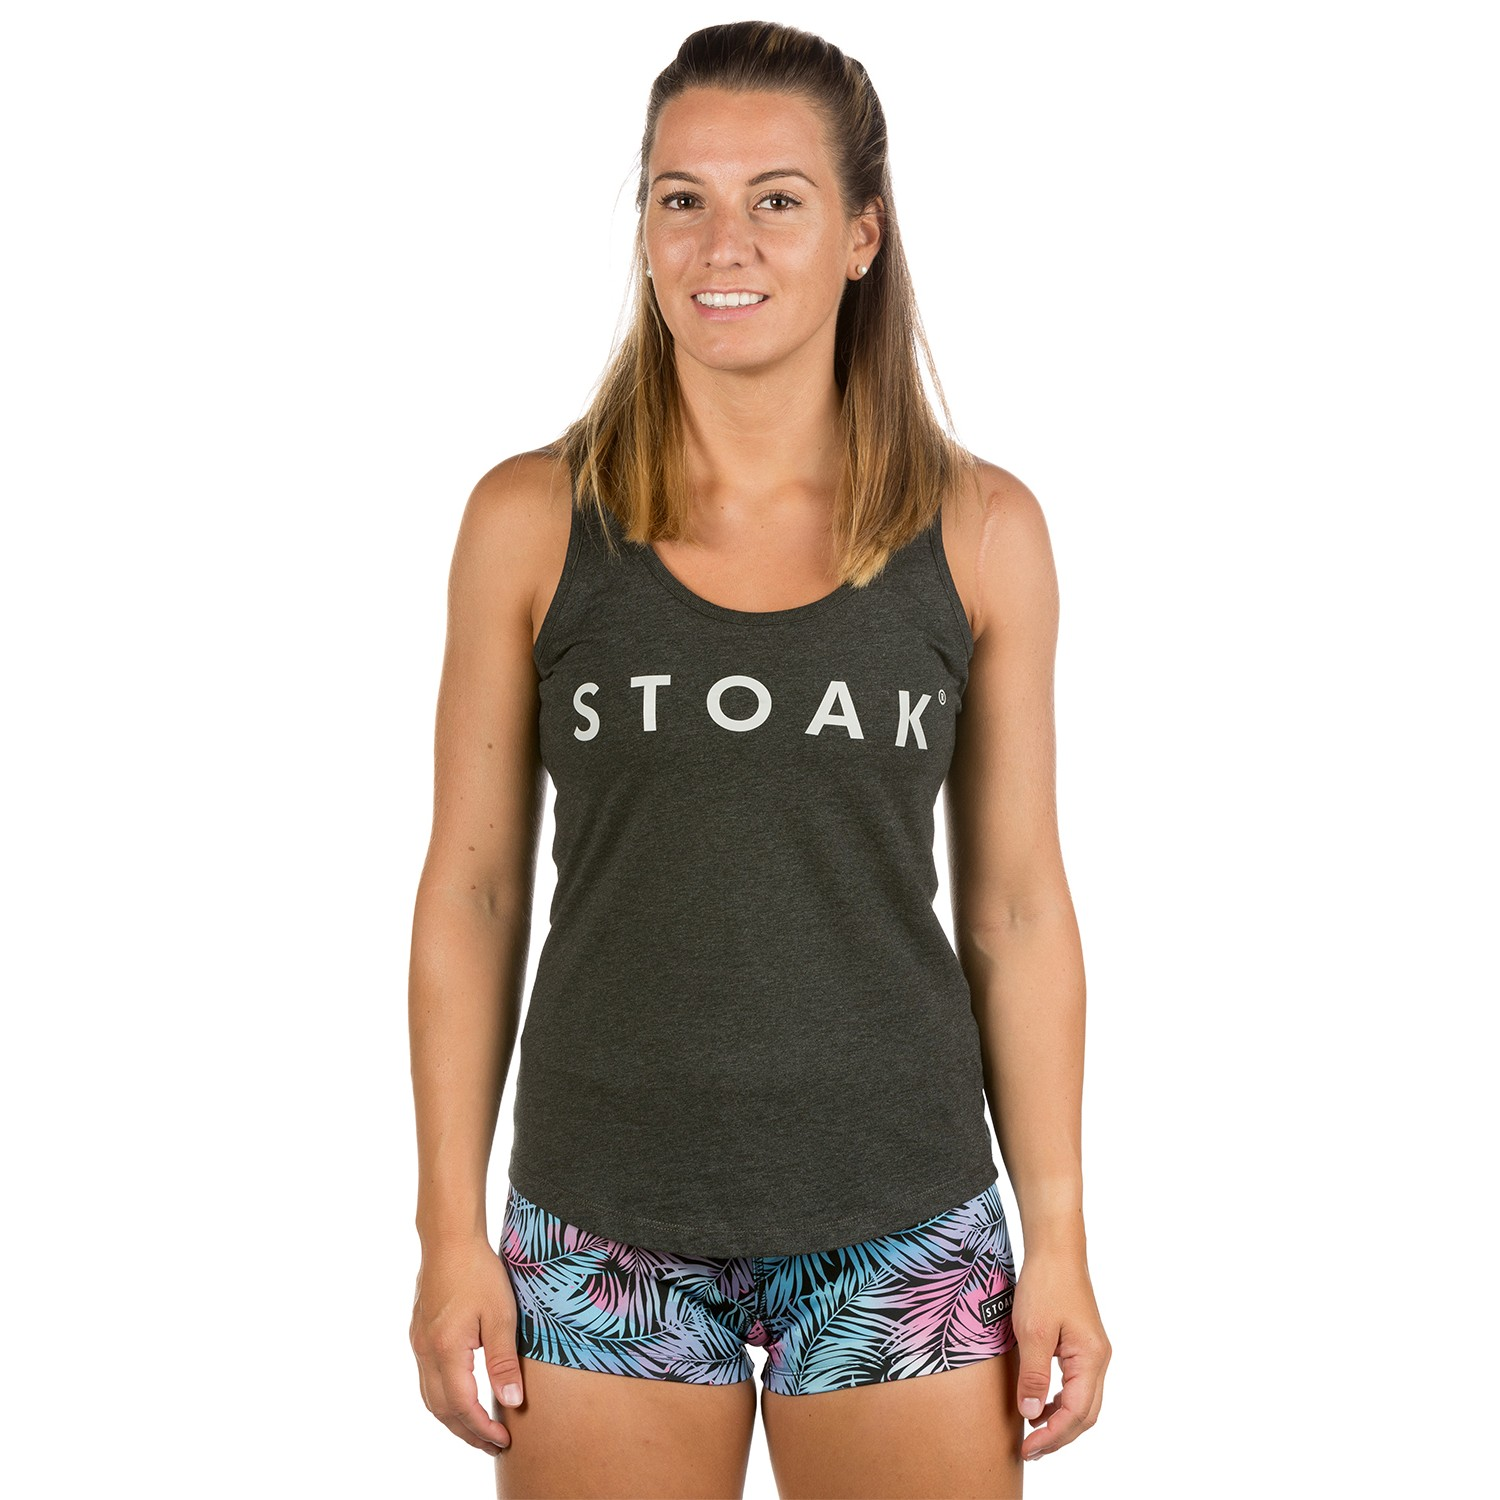 STOAK ASH Tanktop